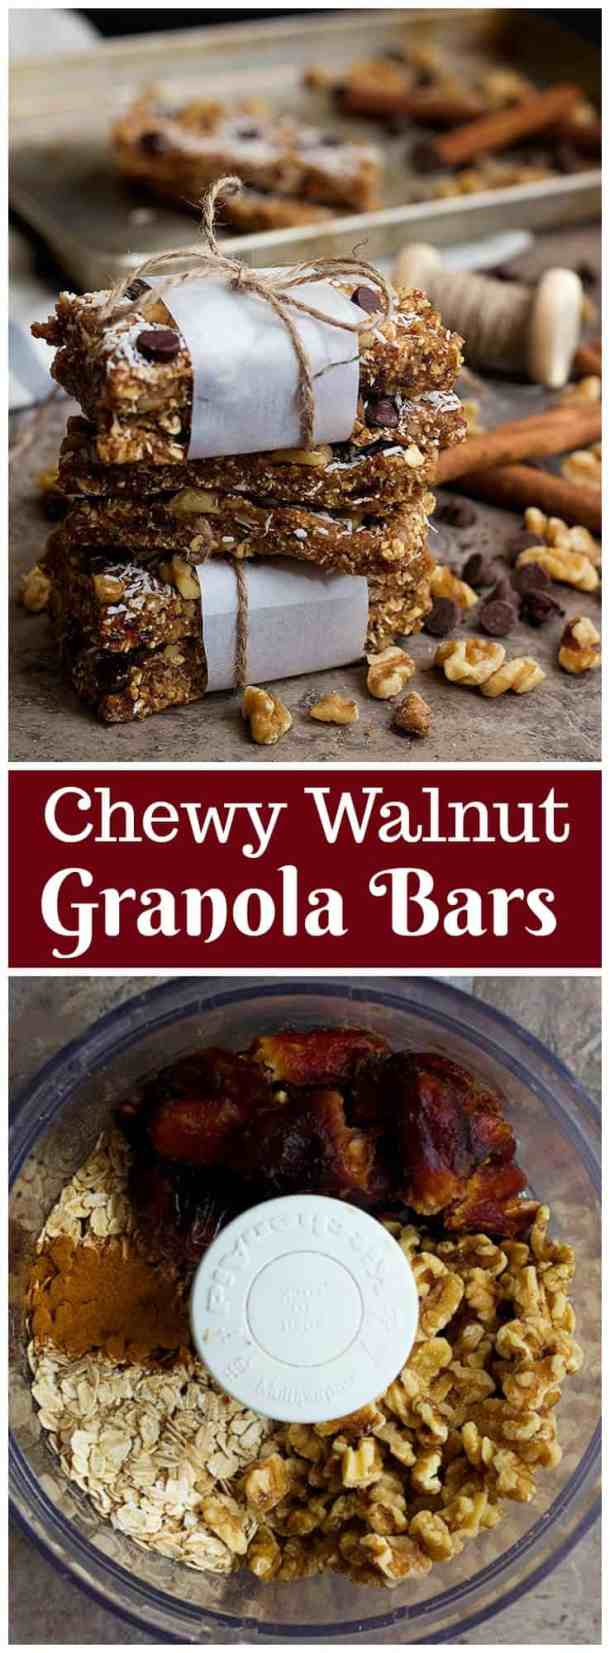 Chewy Granola Bars Recipe |  Chewy Granola Bars homemade | Chewy Granola Bars homemade healthy | Chewy Granola Bars homemade no bake | Granola Bars | Naturally Sweet Granola Bars | Naturally sweet snacks | Breakfast bars | Granola Breakfast Bars |  Date Walnut | Unicornsinthekitchen.com